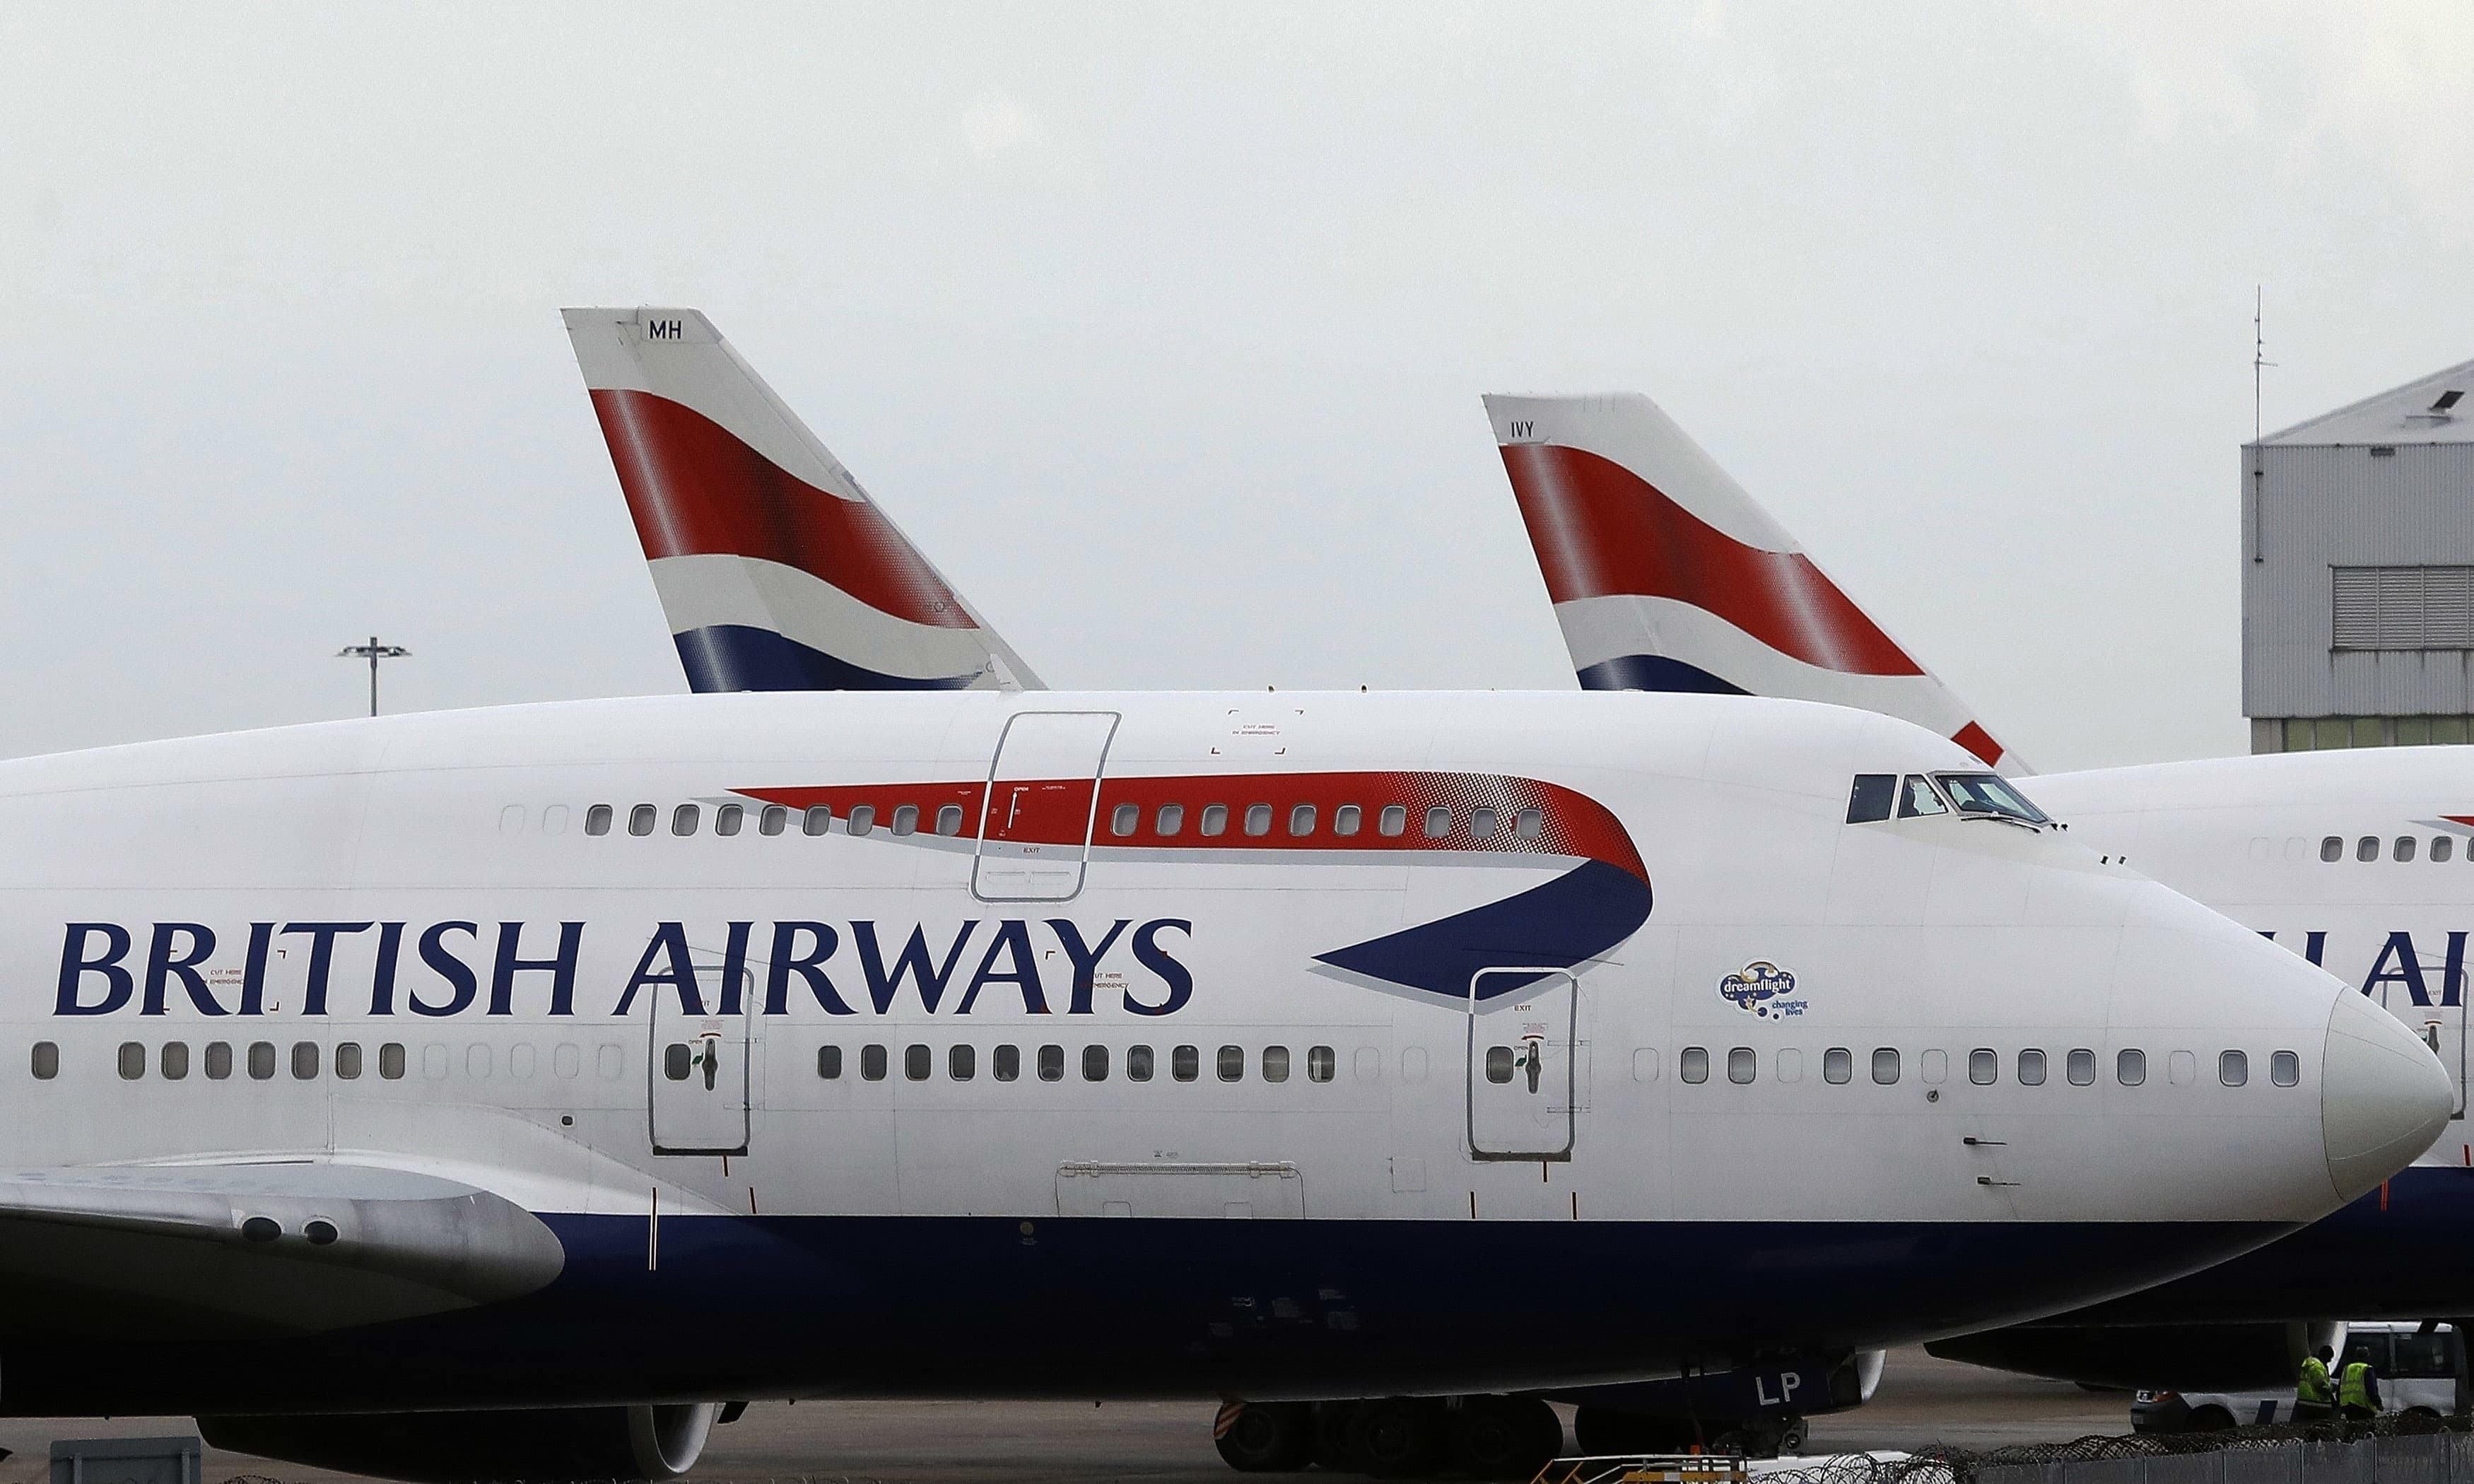 FILE - In this Jan. 10, 2017 file photo, British Airways planes are parked at Heathrow Airport in London. British Airways will resume flights to Pakistan in June 2019, a decade after it suspended operations following bombing on the Marriott Hotel in Islamabad that killed dozens, an official of British Airways said in a statement, Tuesday Dec. 18. 2018. (AP Photo/Frank Augstein, File) — Copyright 2017 The Associated Press. All rights reserved.